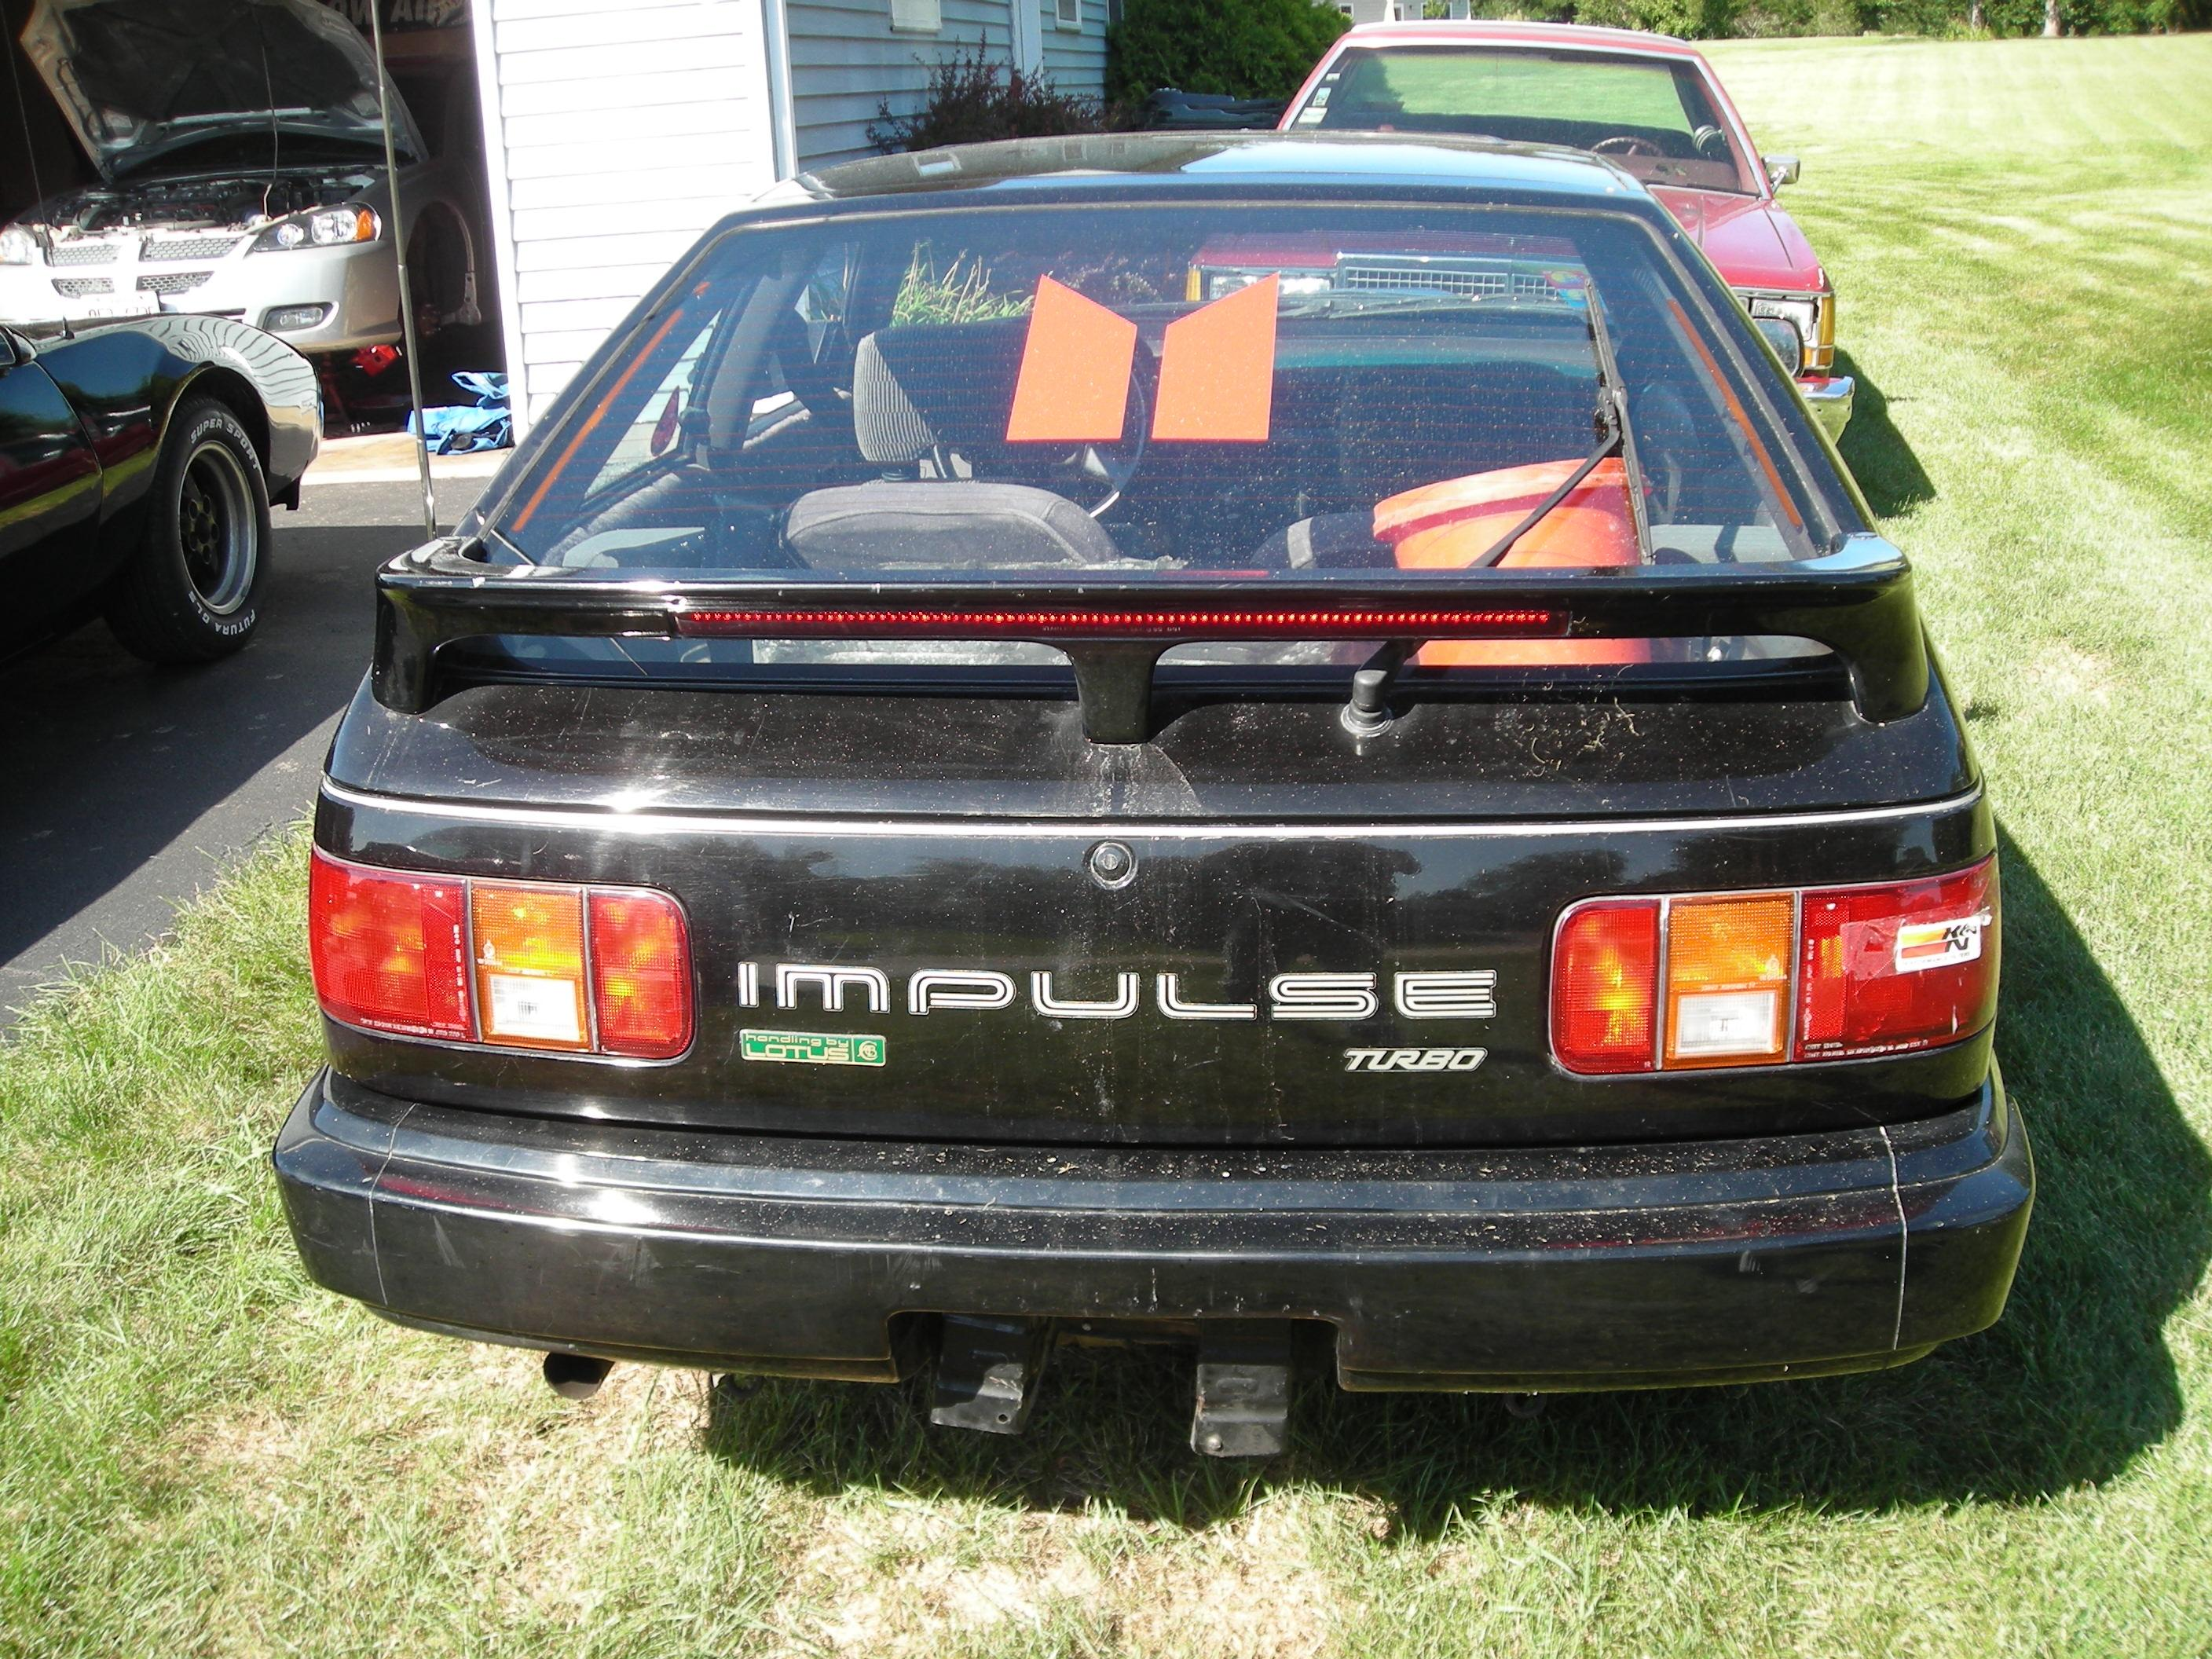 1989 isuzu impulse view all 1989 isuzu impulse at cardomain